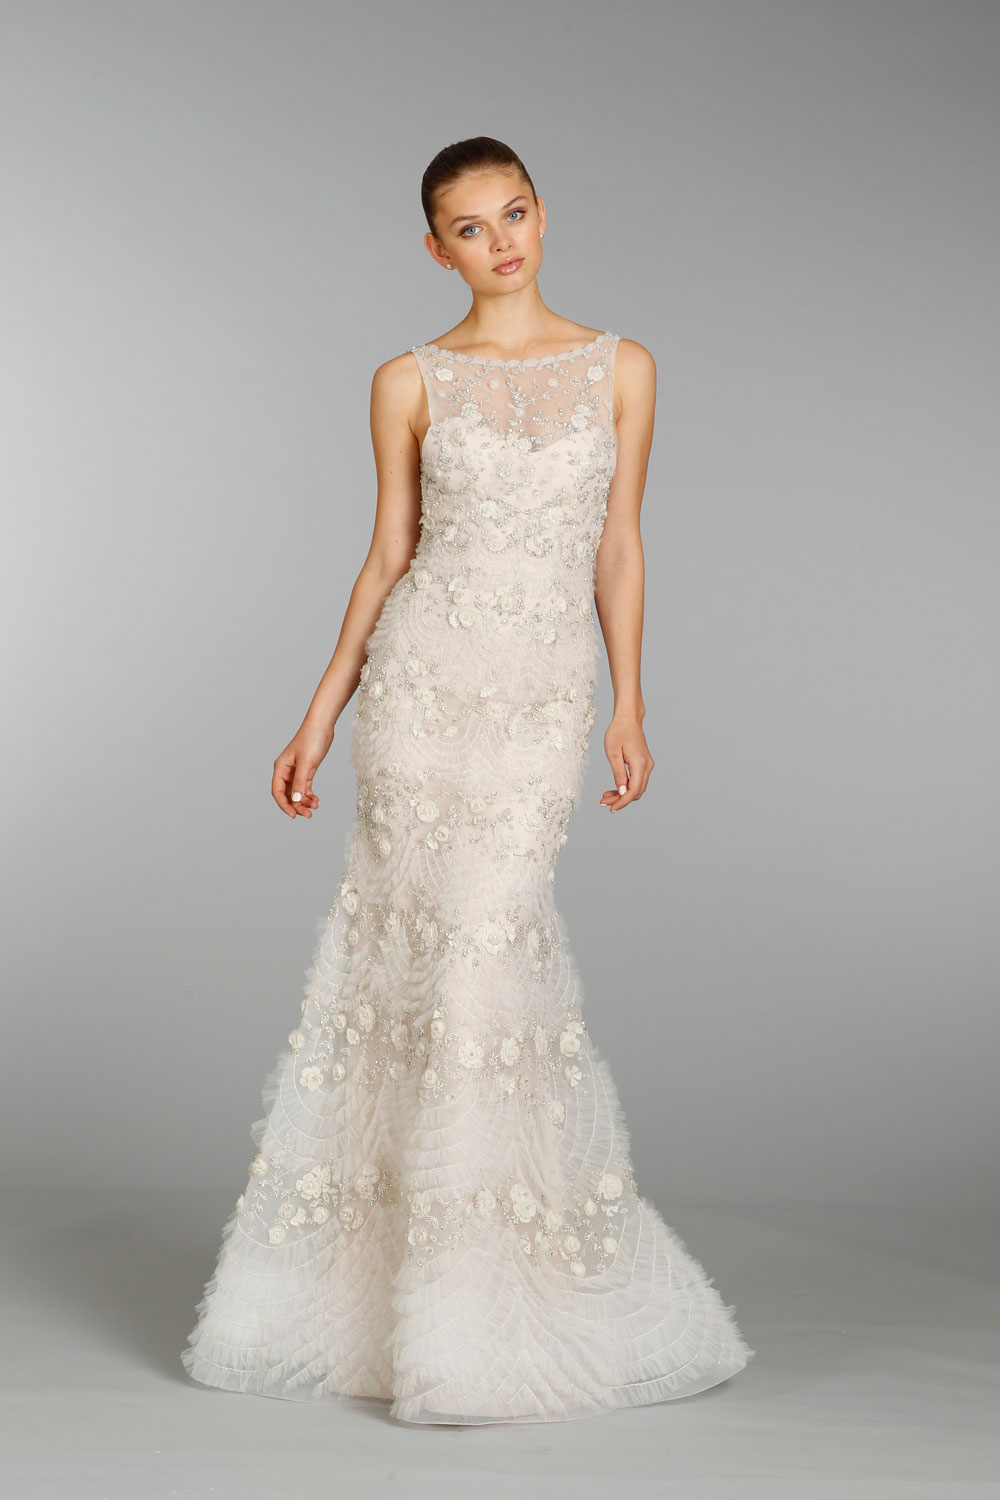 Lazaro wedding dress fall 2013 bridal 3362 for What kind of wedding dress